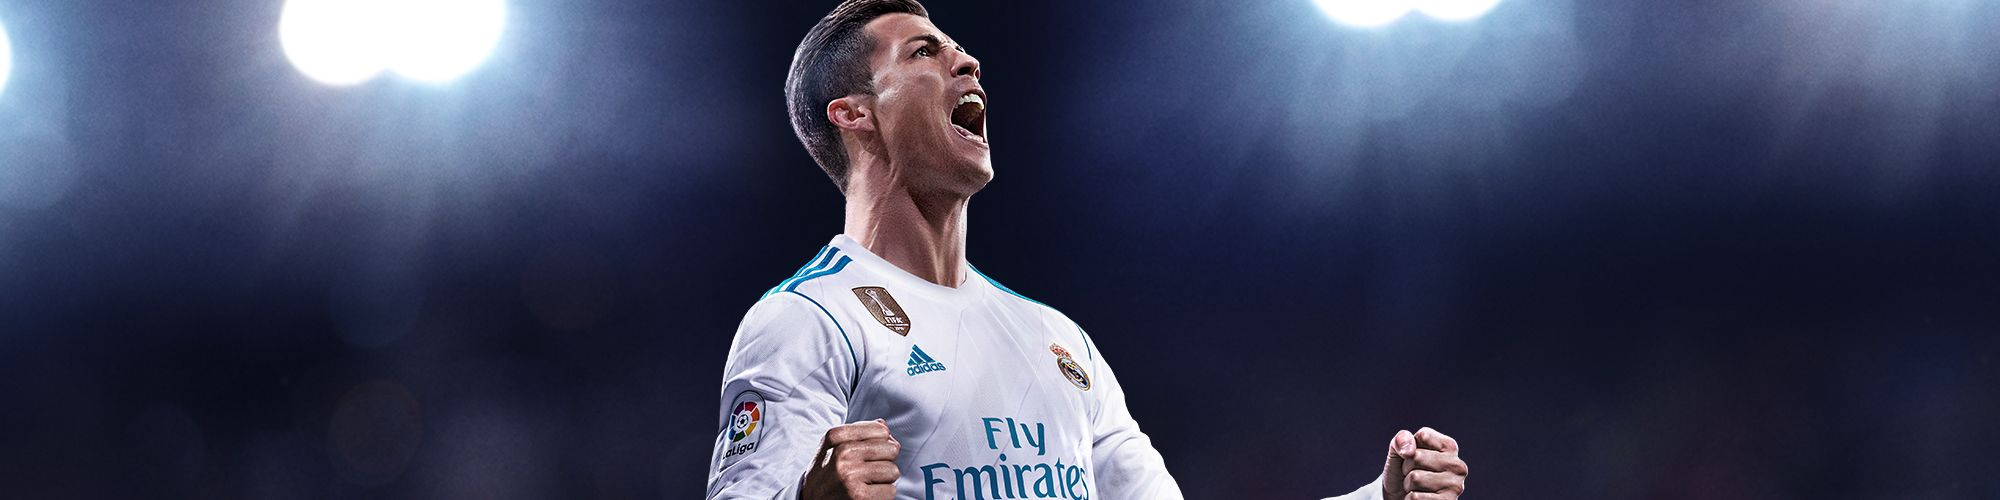 FIFA 18 technical specifications for PC